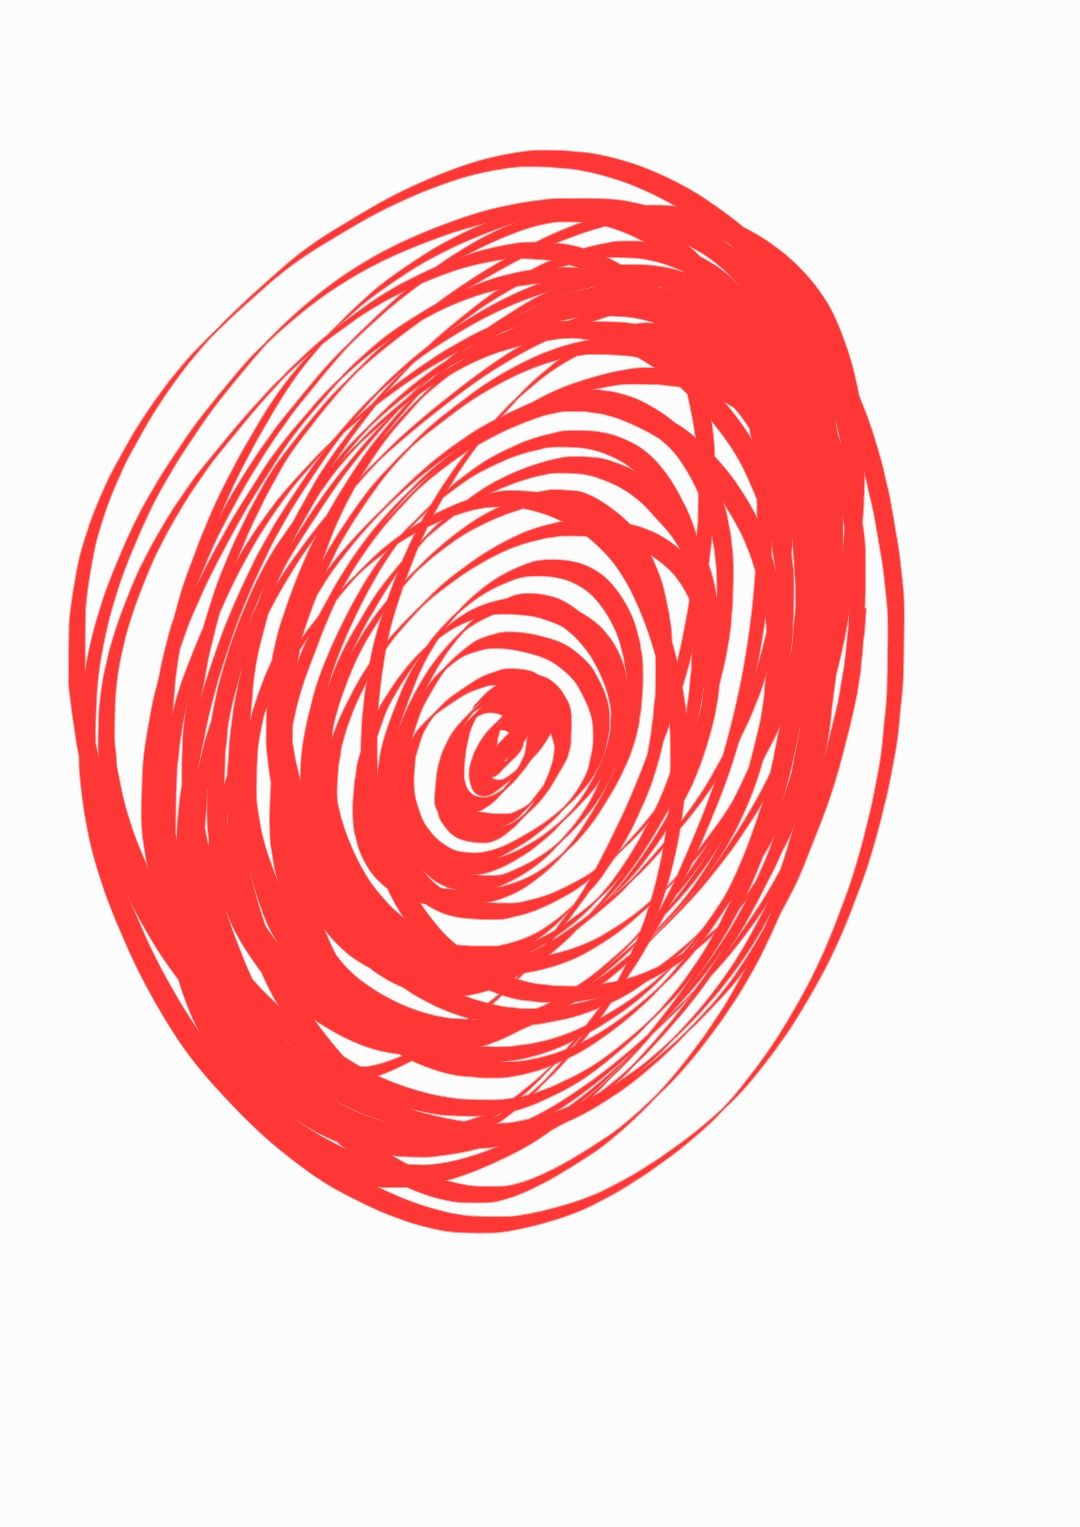 A doodle showing a jumble of concentric oval shapes in red against a white background